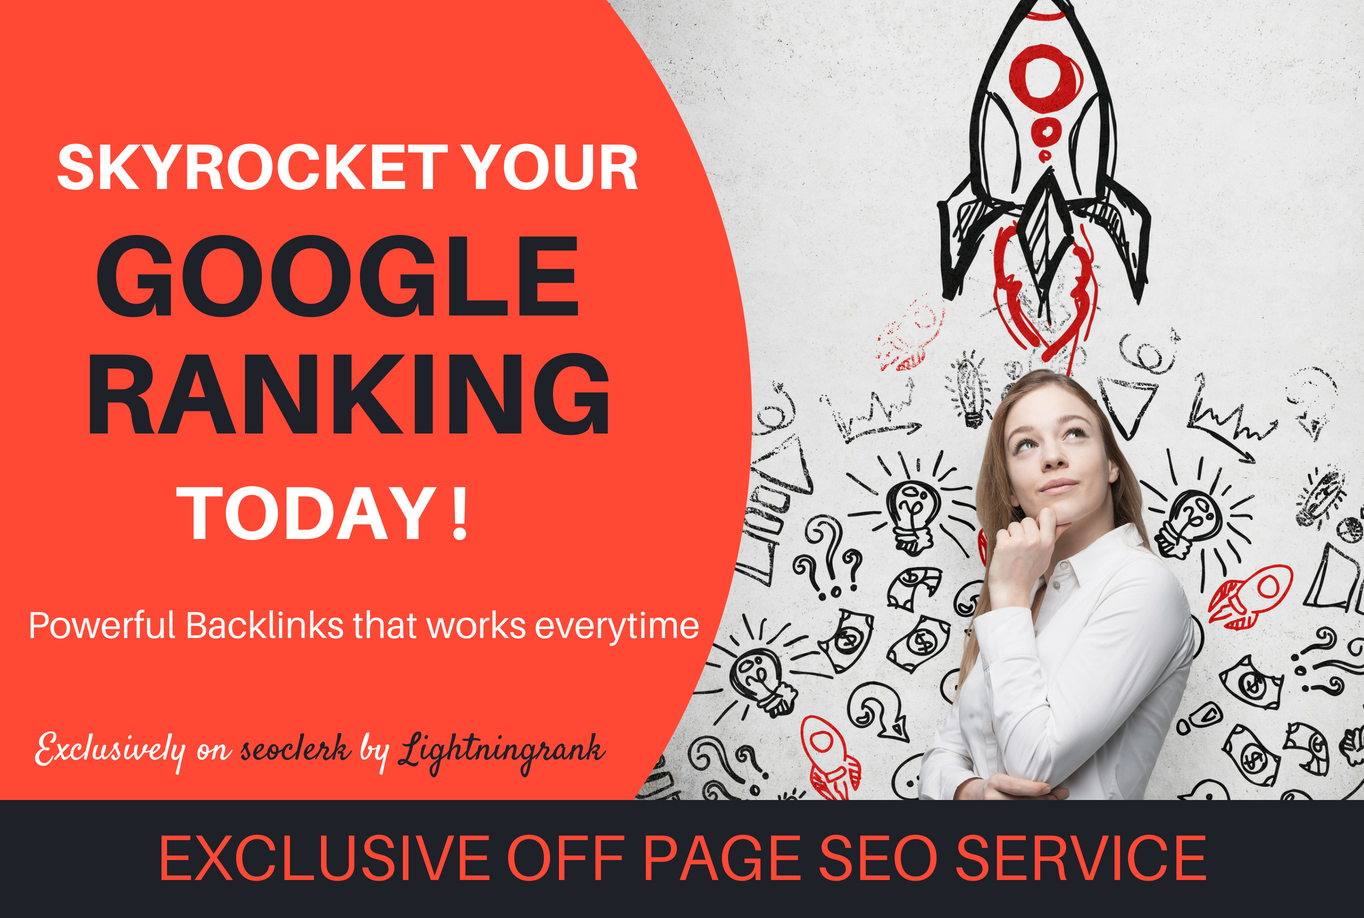 Skyrocket Google Ranking with Complete Backlinks Foundation